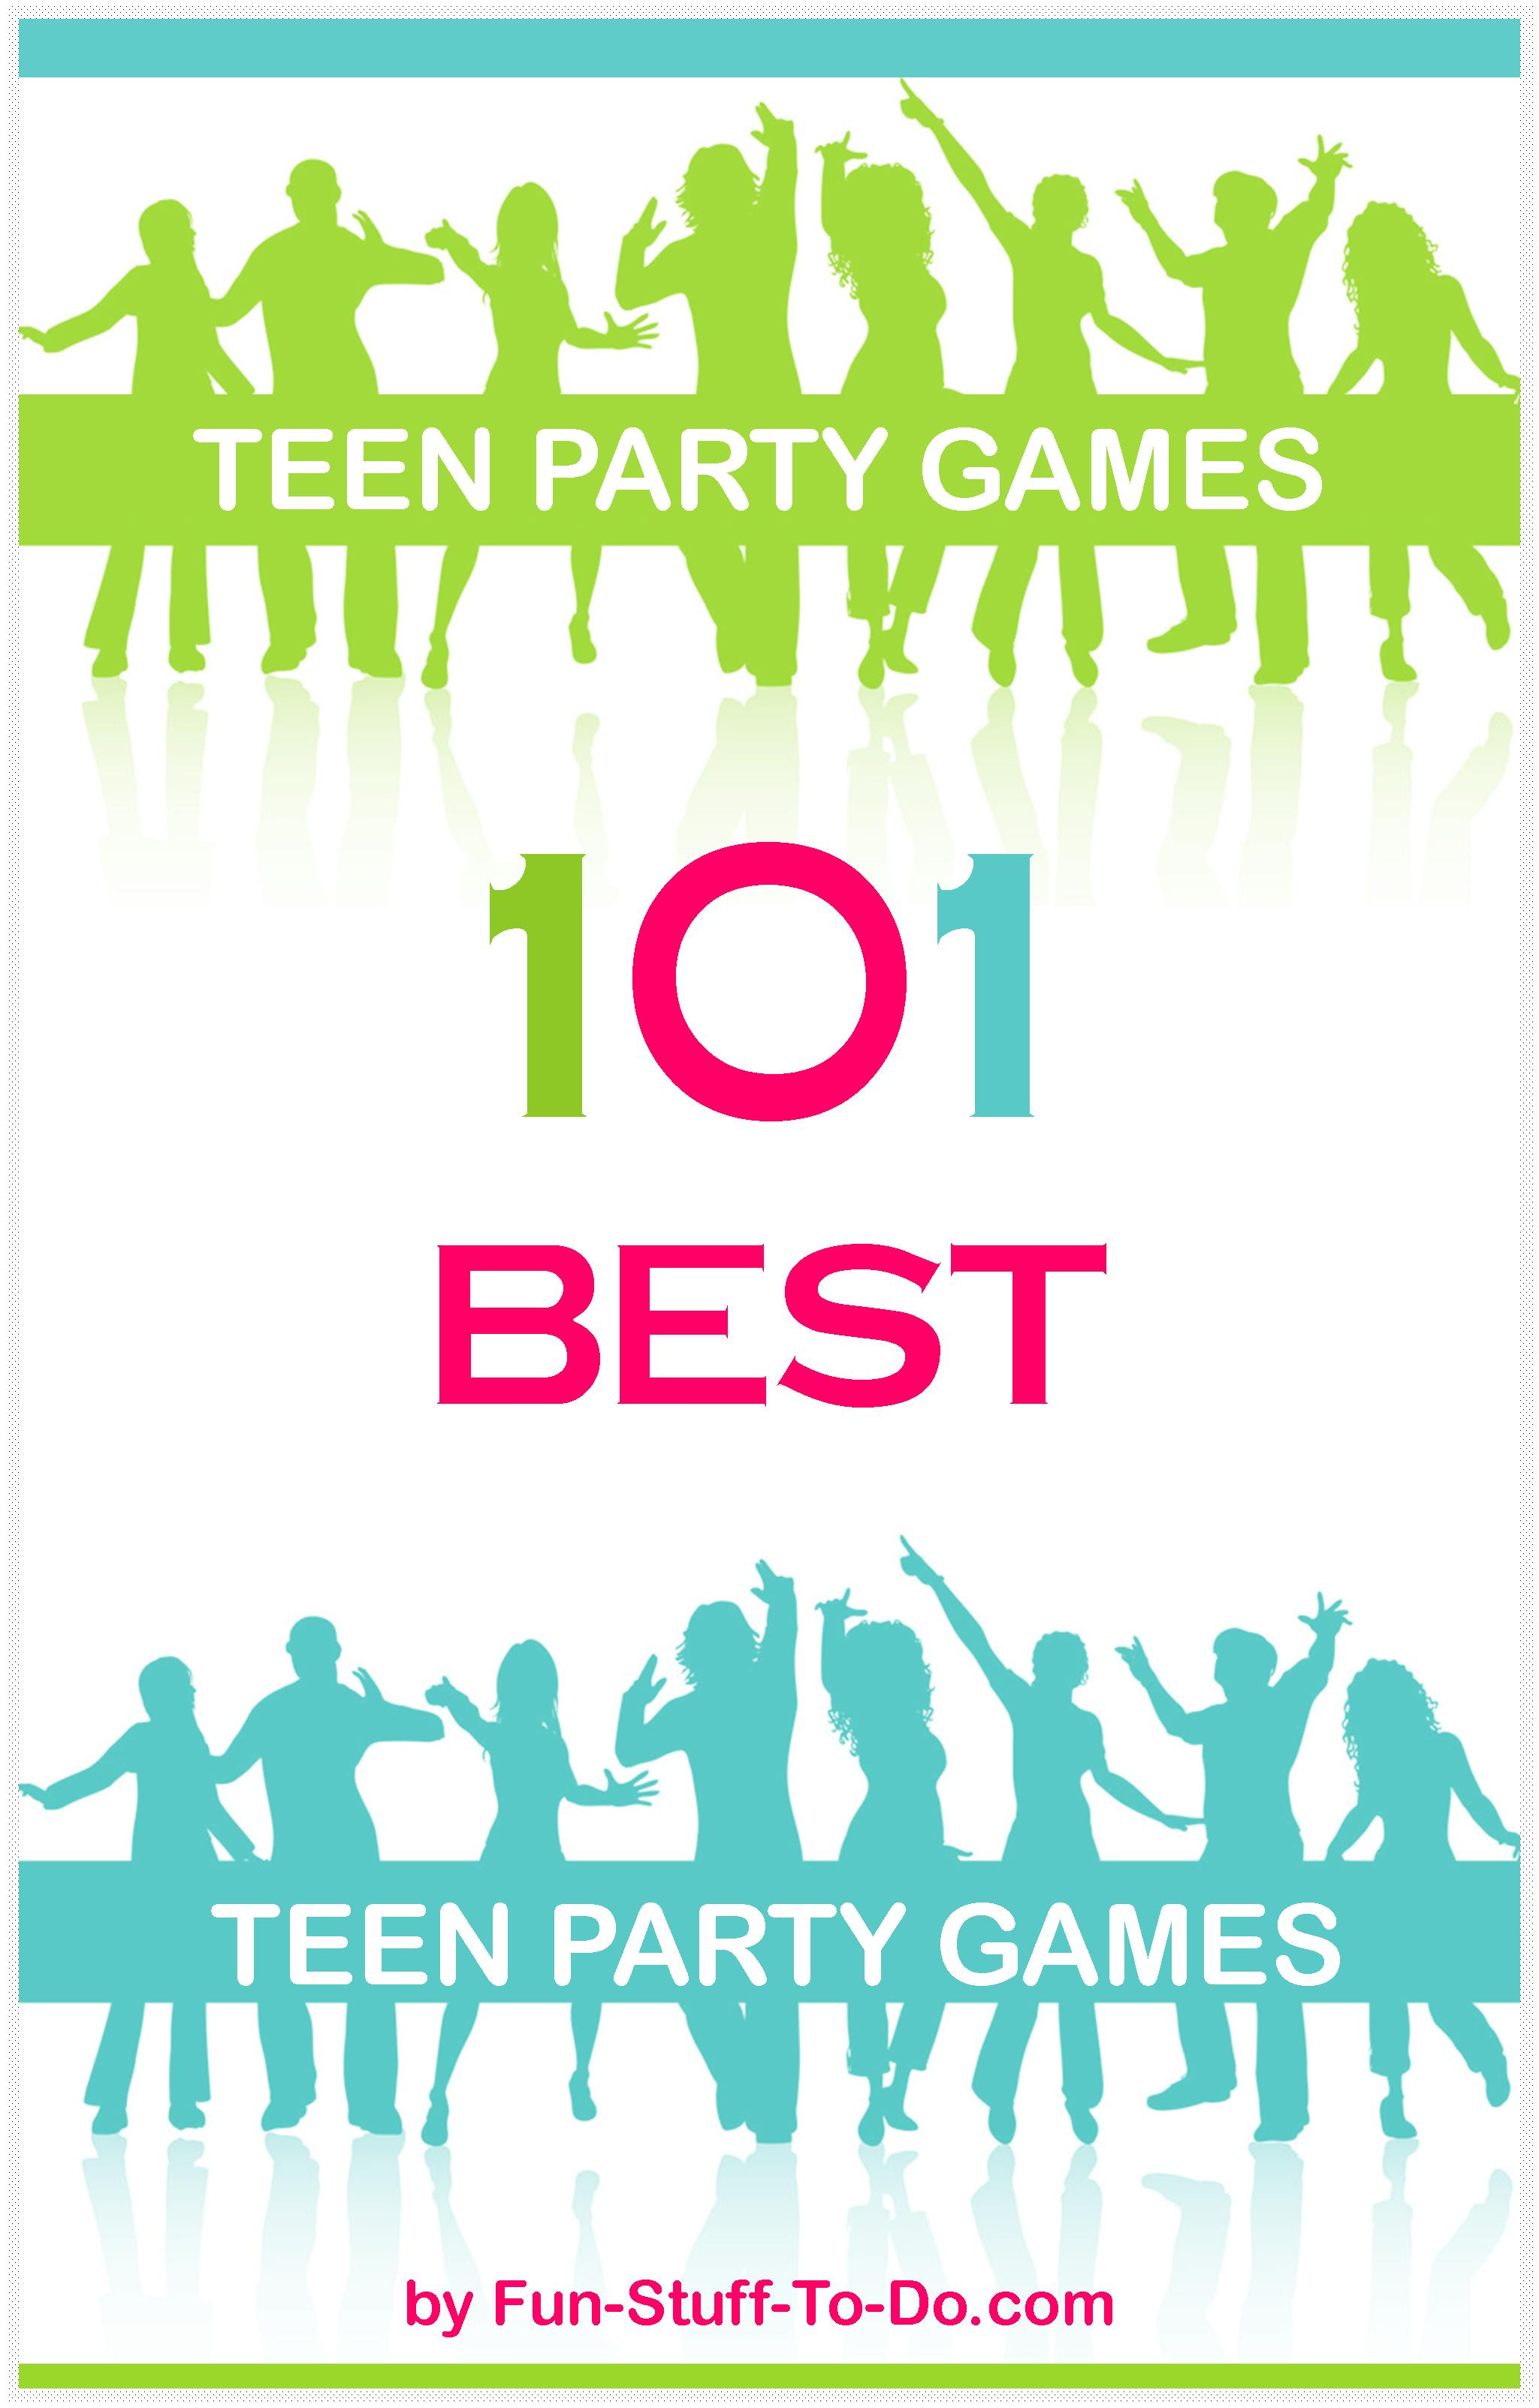 Beach game party teen